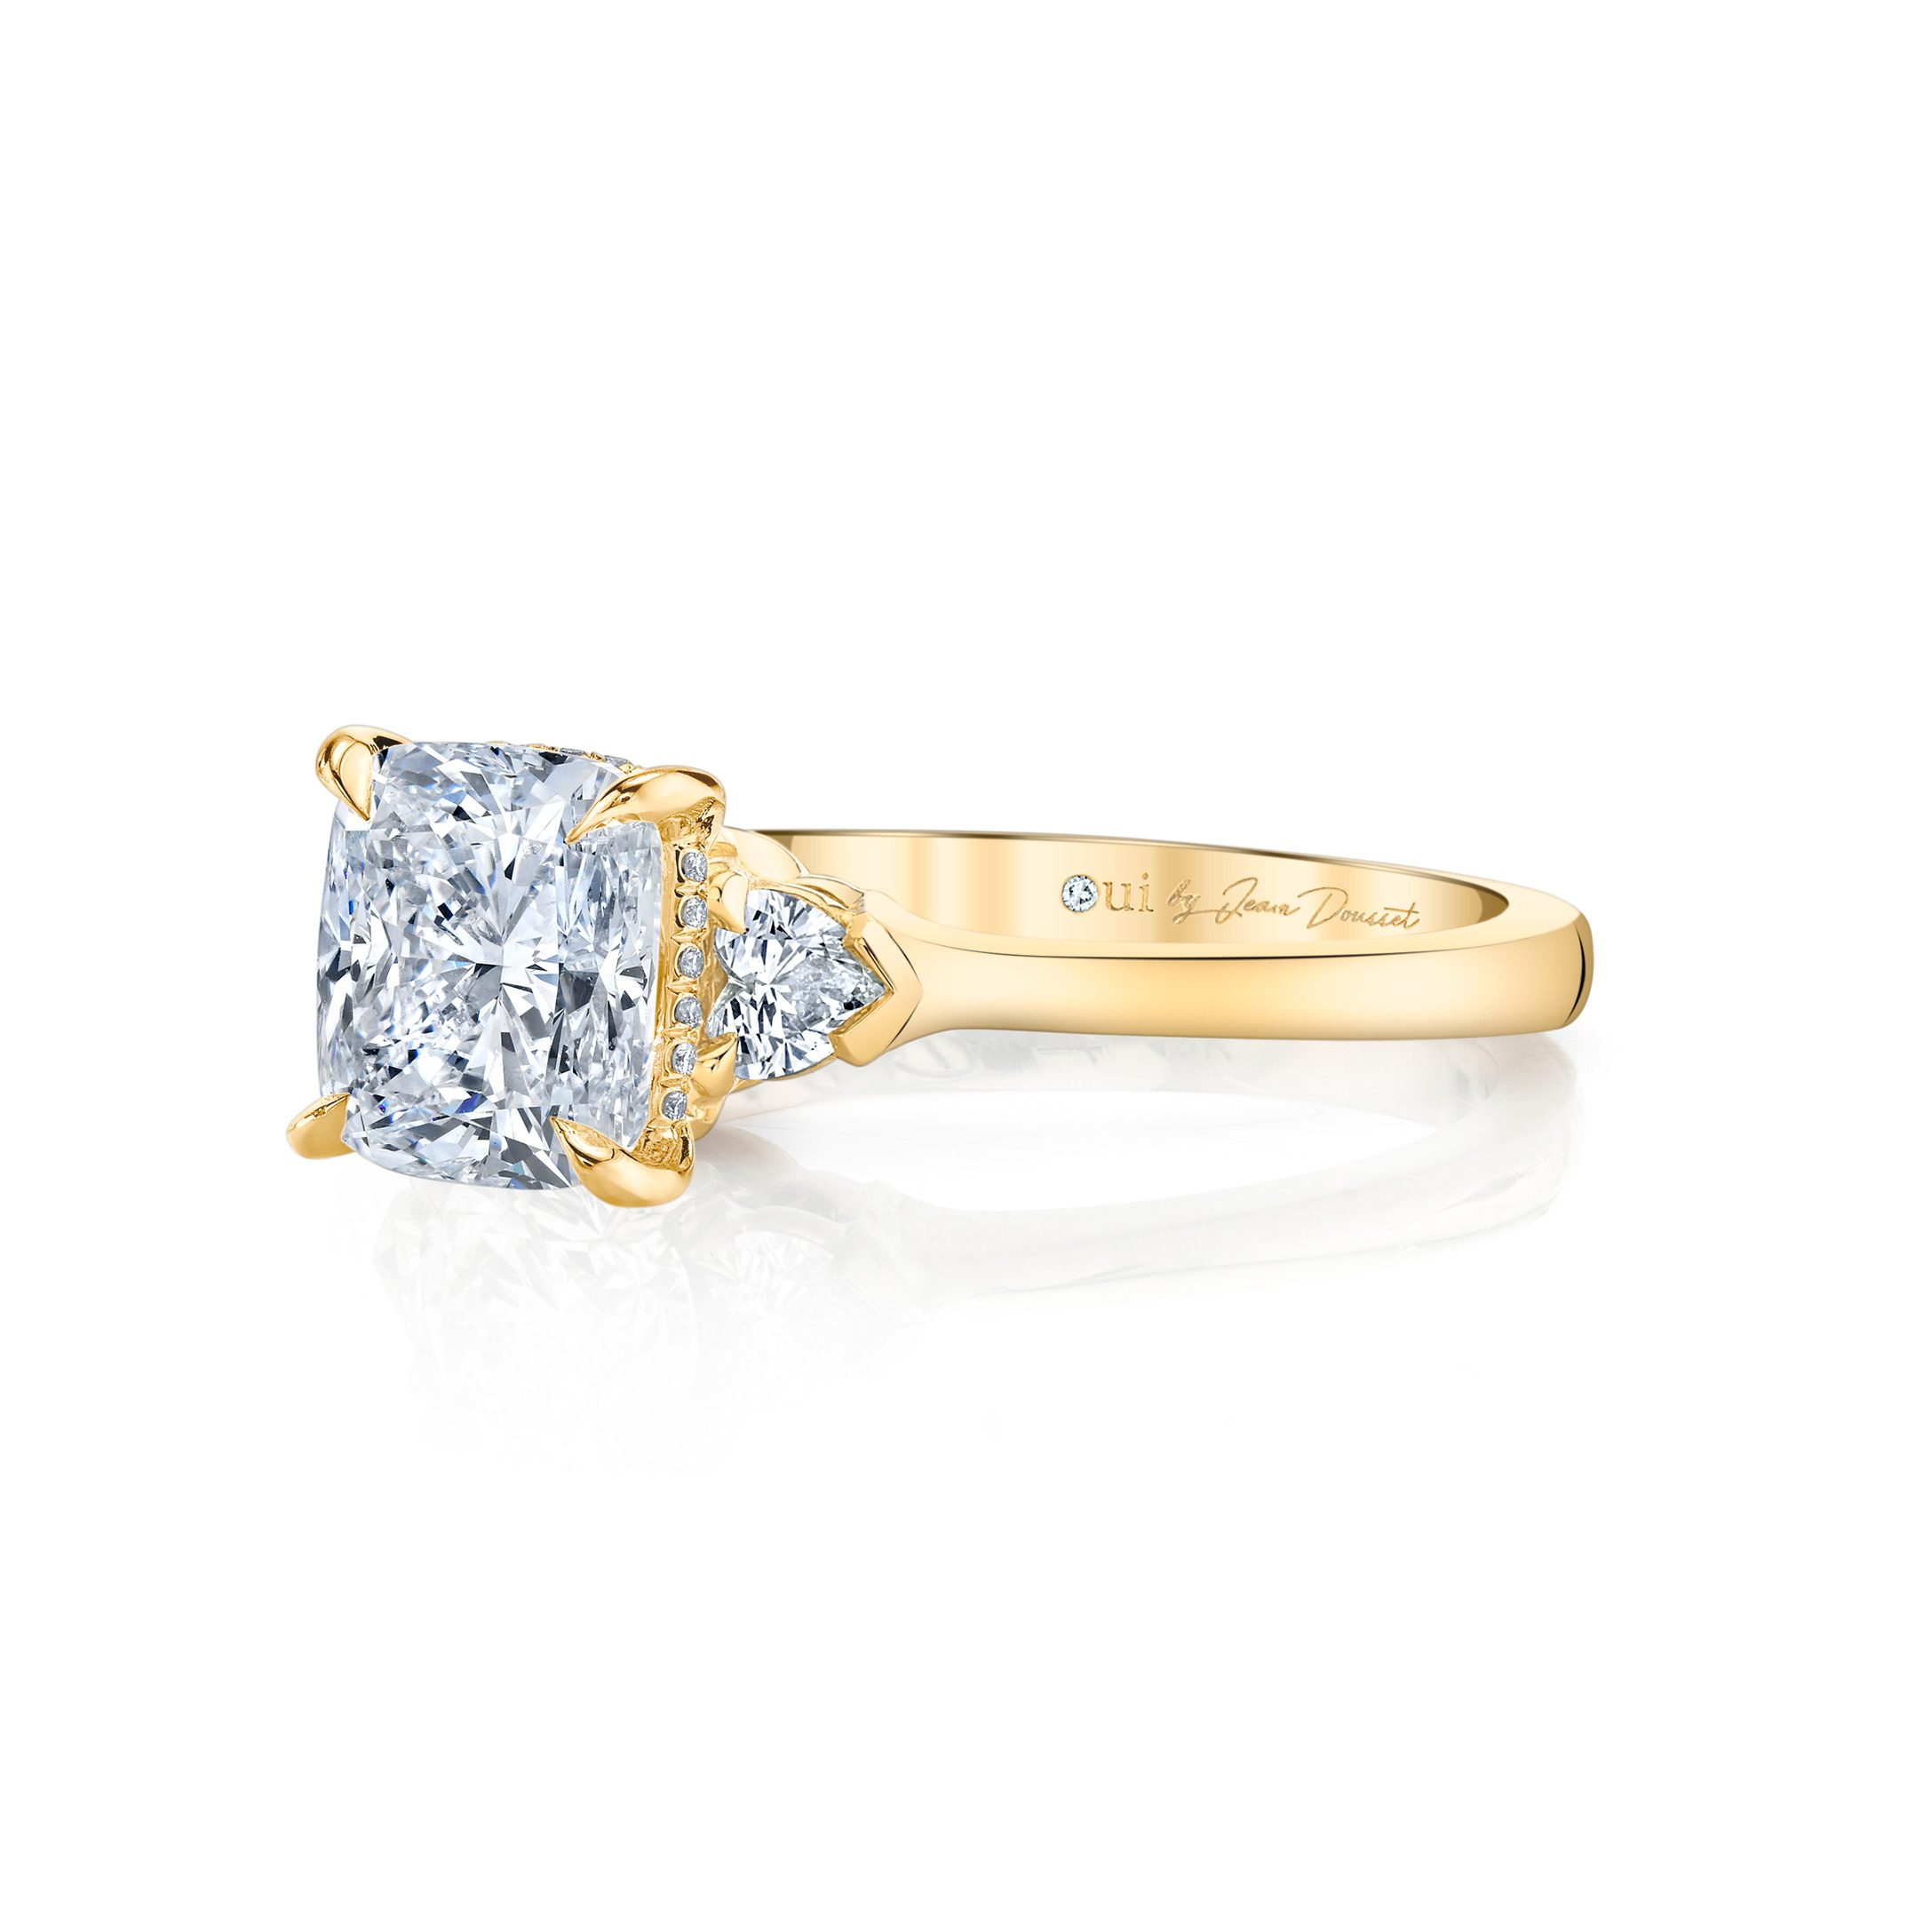 Claire Cushion Three Stone Engagement Ring with heart-shaped diamond side stones in 18k Yellow Gold by Oui Side View by Jean Dousset